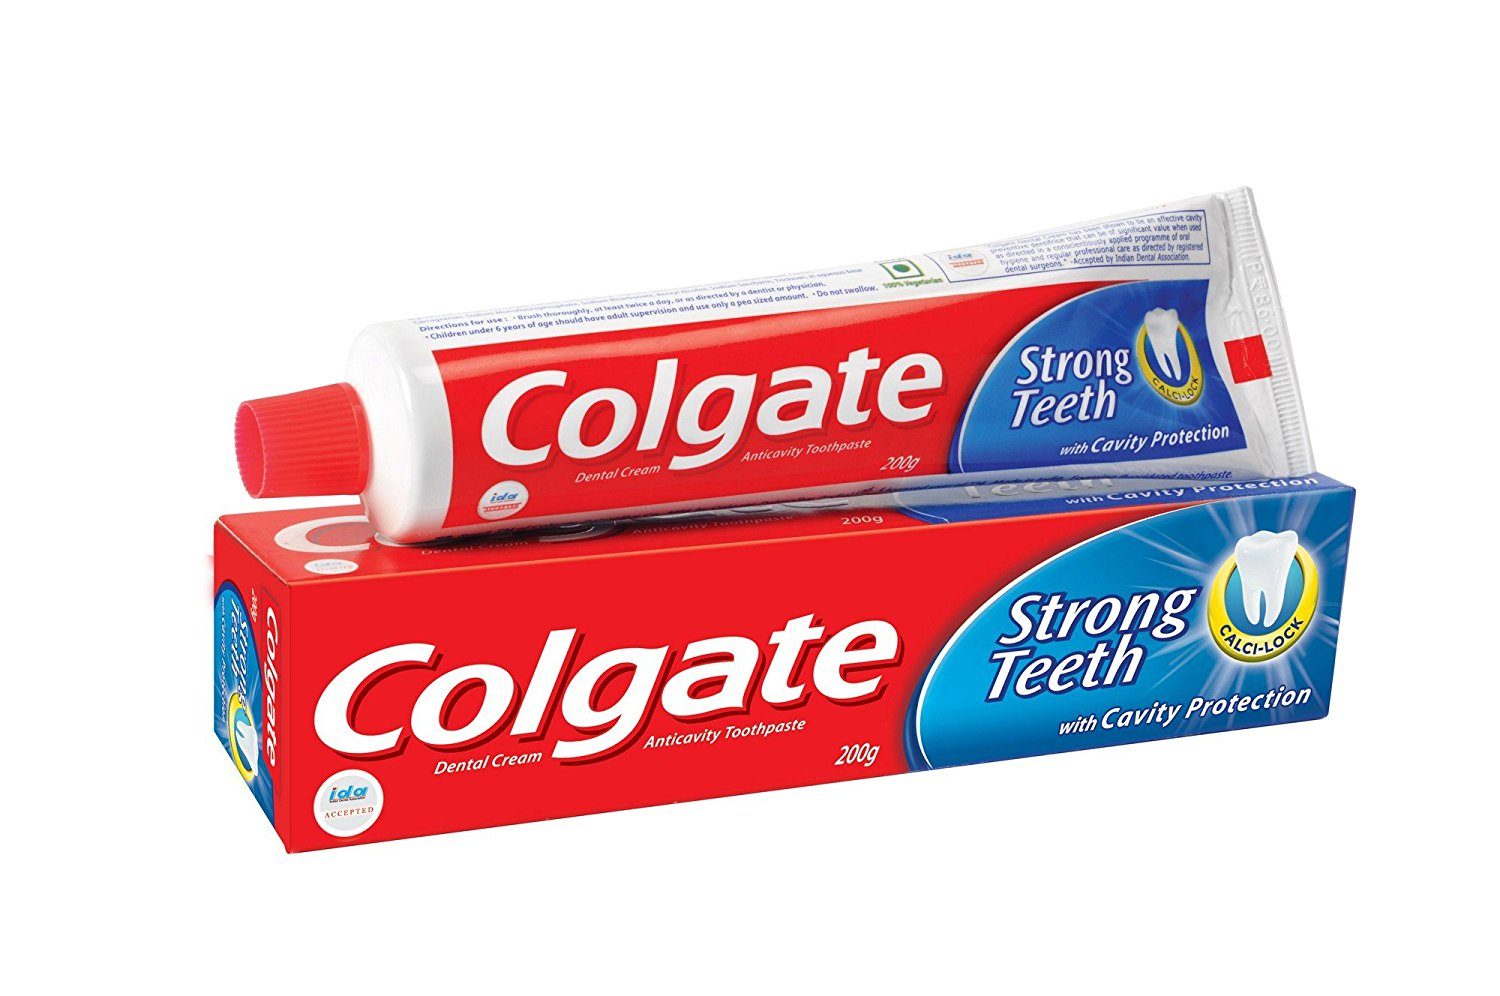 Colgate Strong Teeth Toothpaste With Cavity Protection 200 Gm